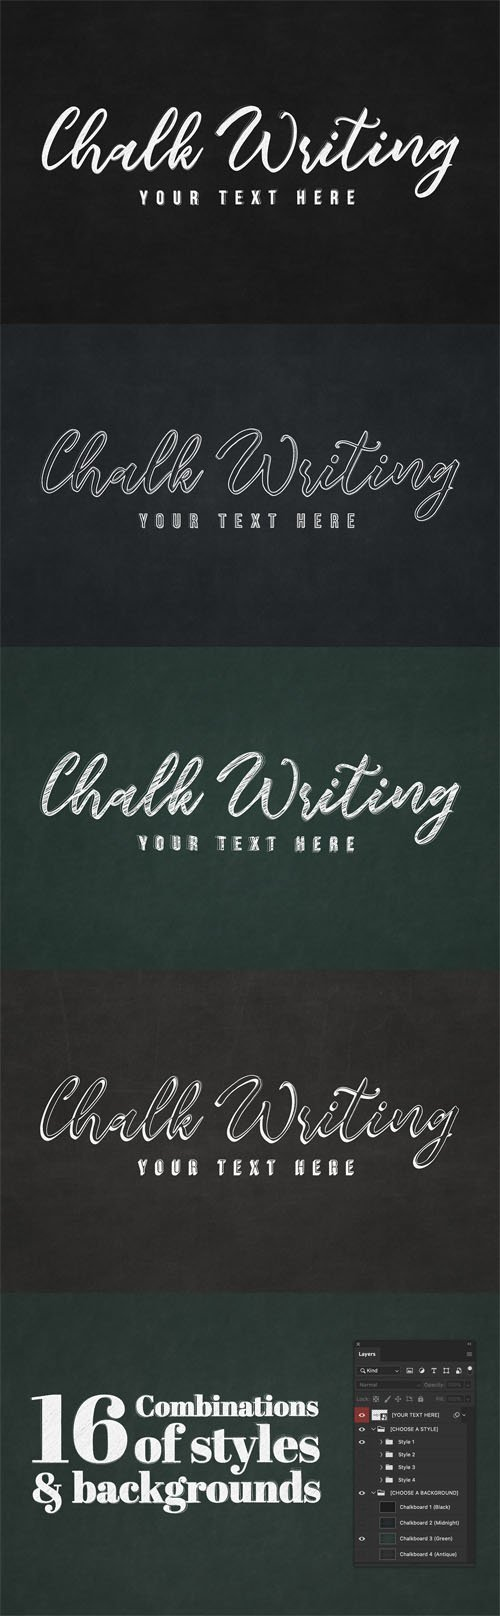 Chalk Writing - 4 Photoshop Text Effects